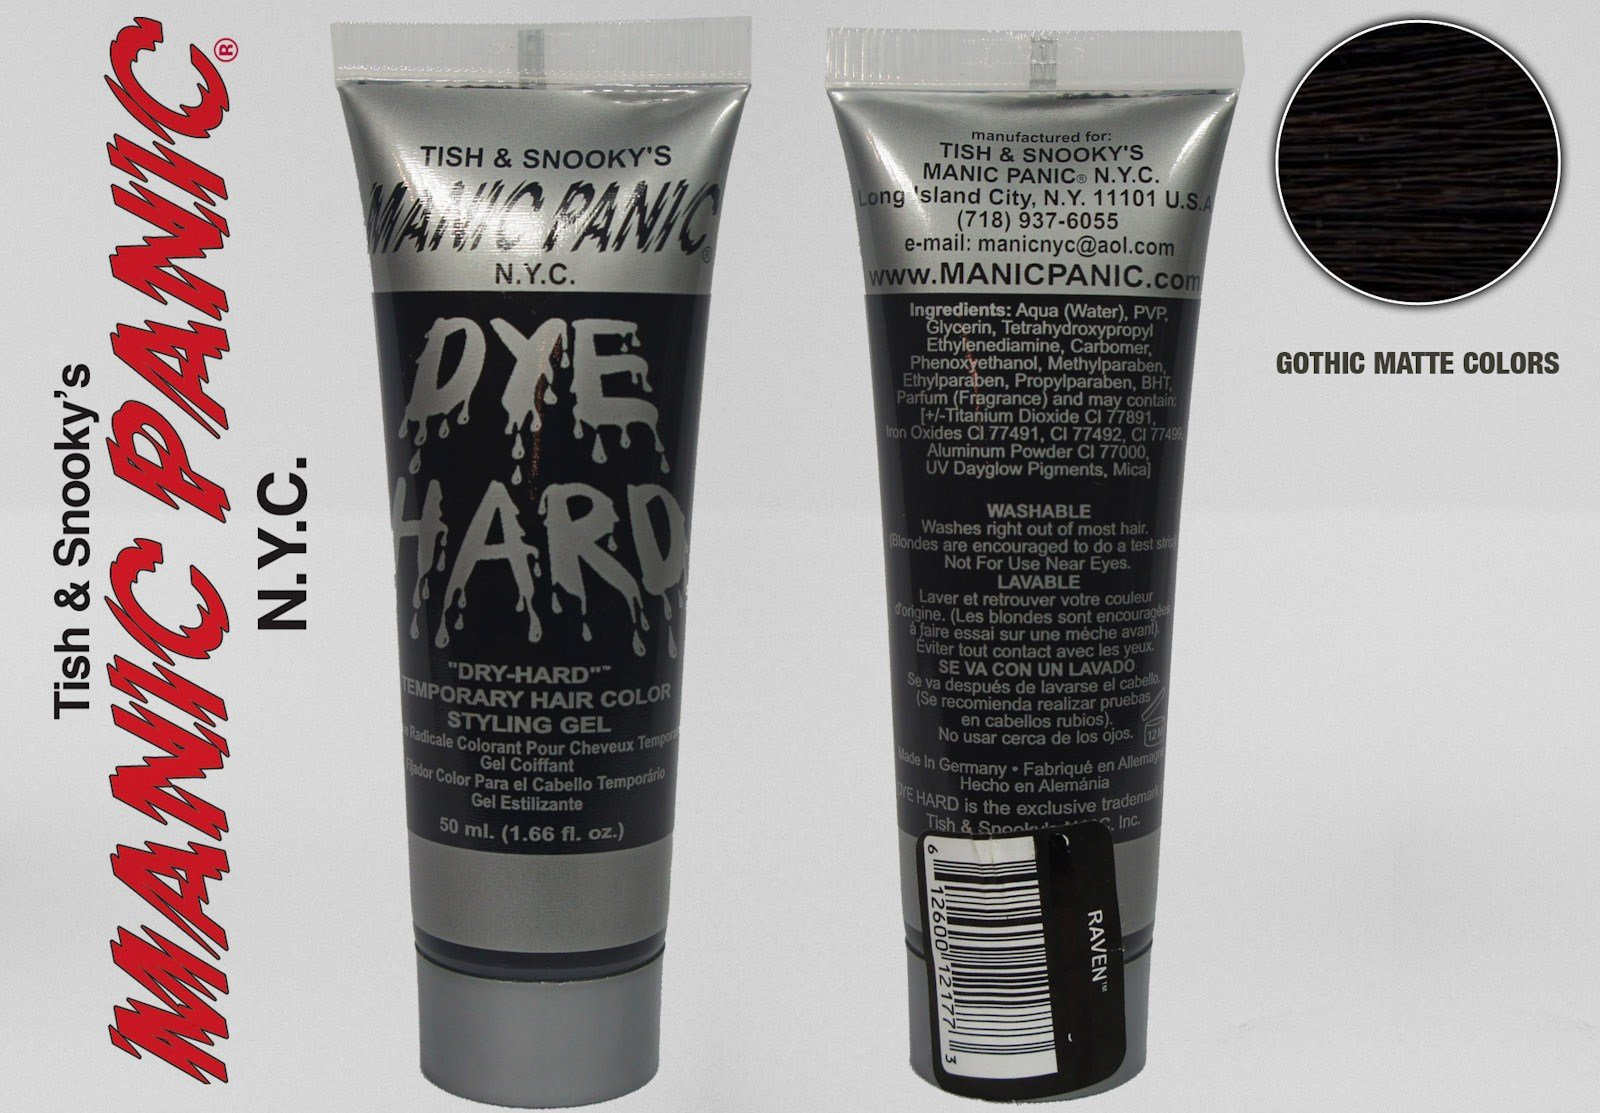 The Best Manic Panic Dyehard Styling Hair Gel Temporary Wash Out Pictures